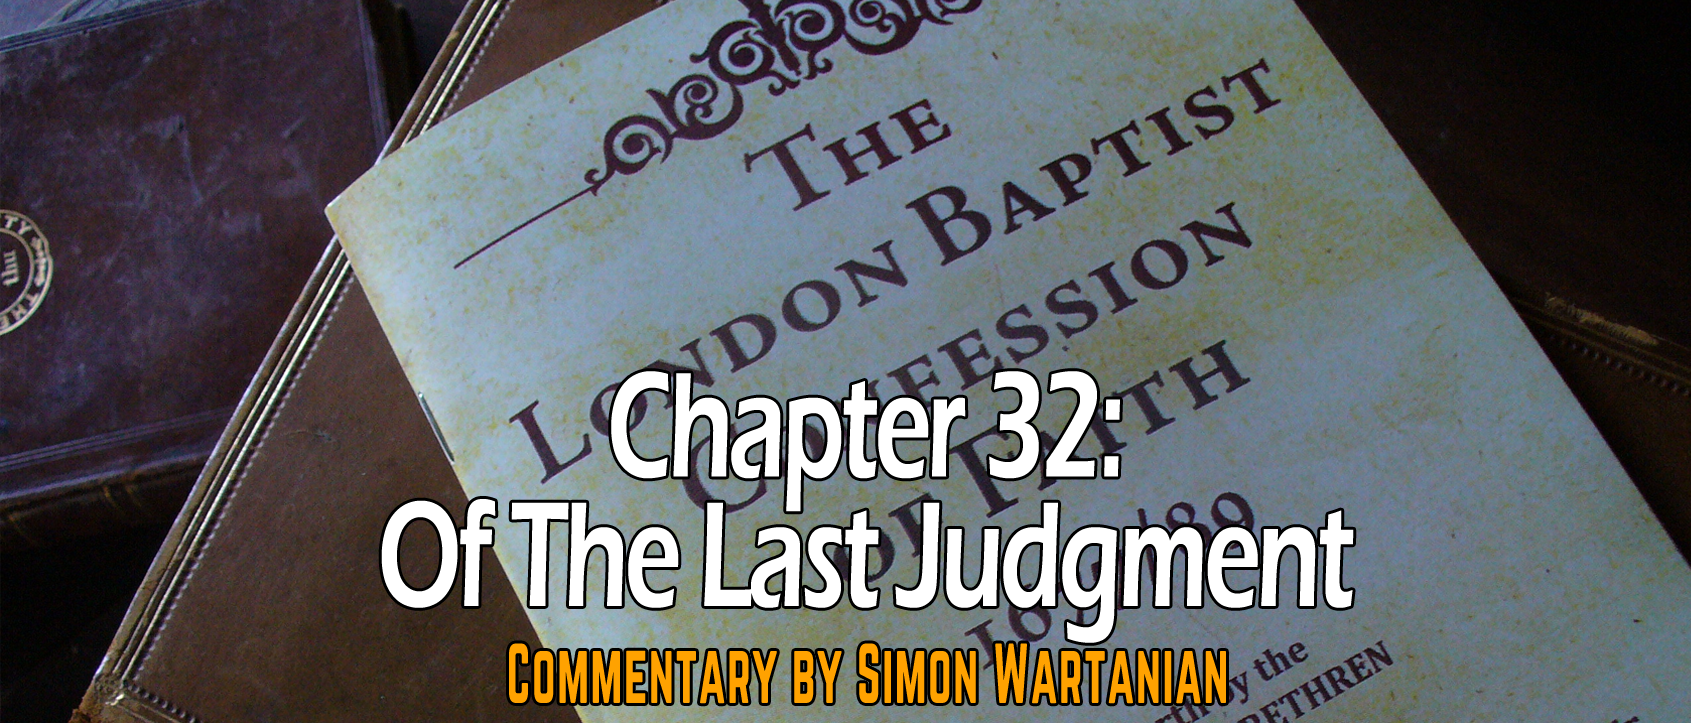 1689 Baptist Confession Chapter 32: Of the Last Judgment - Commentary